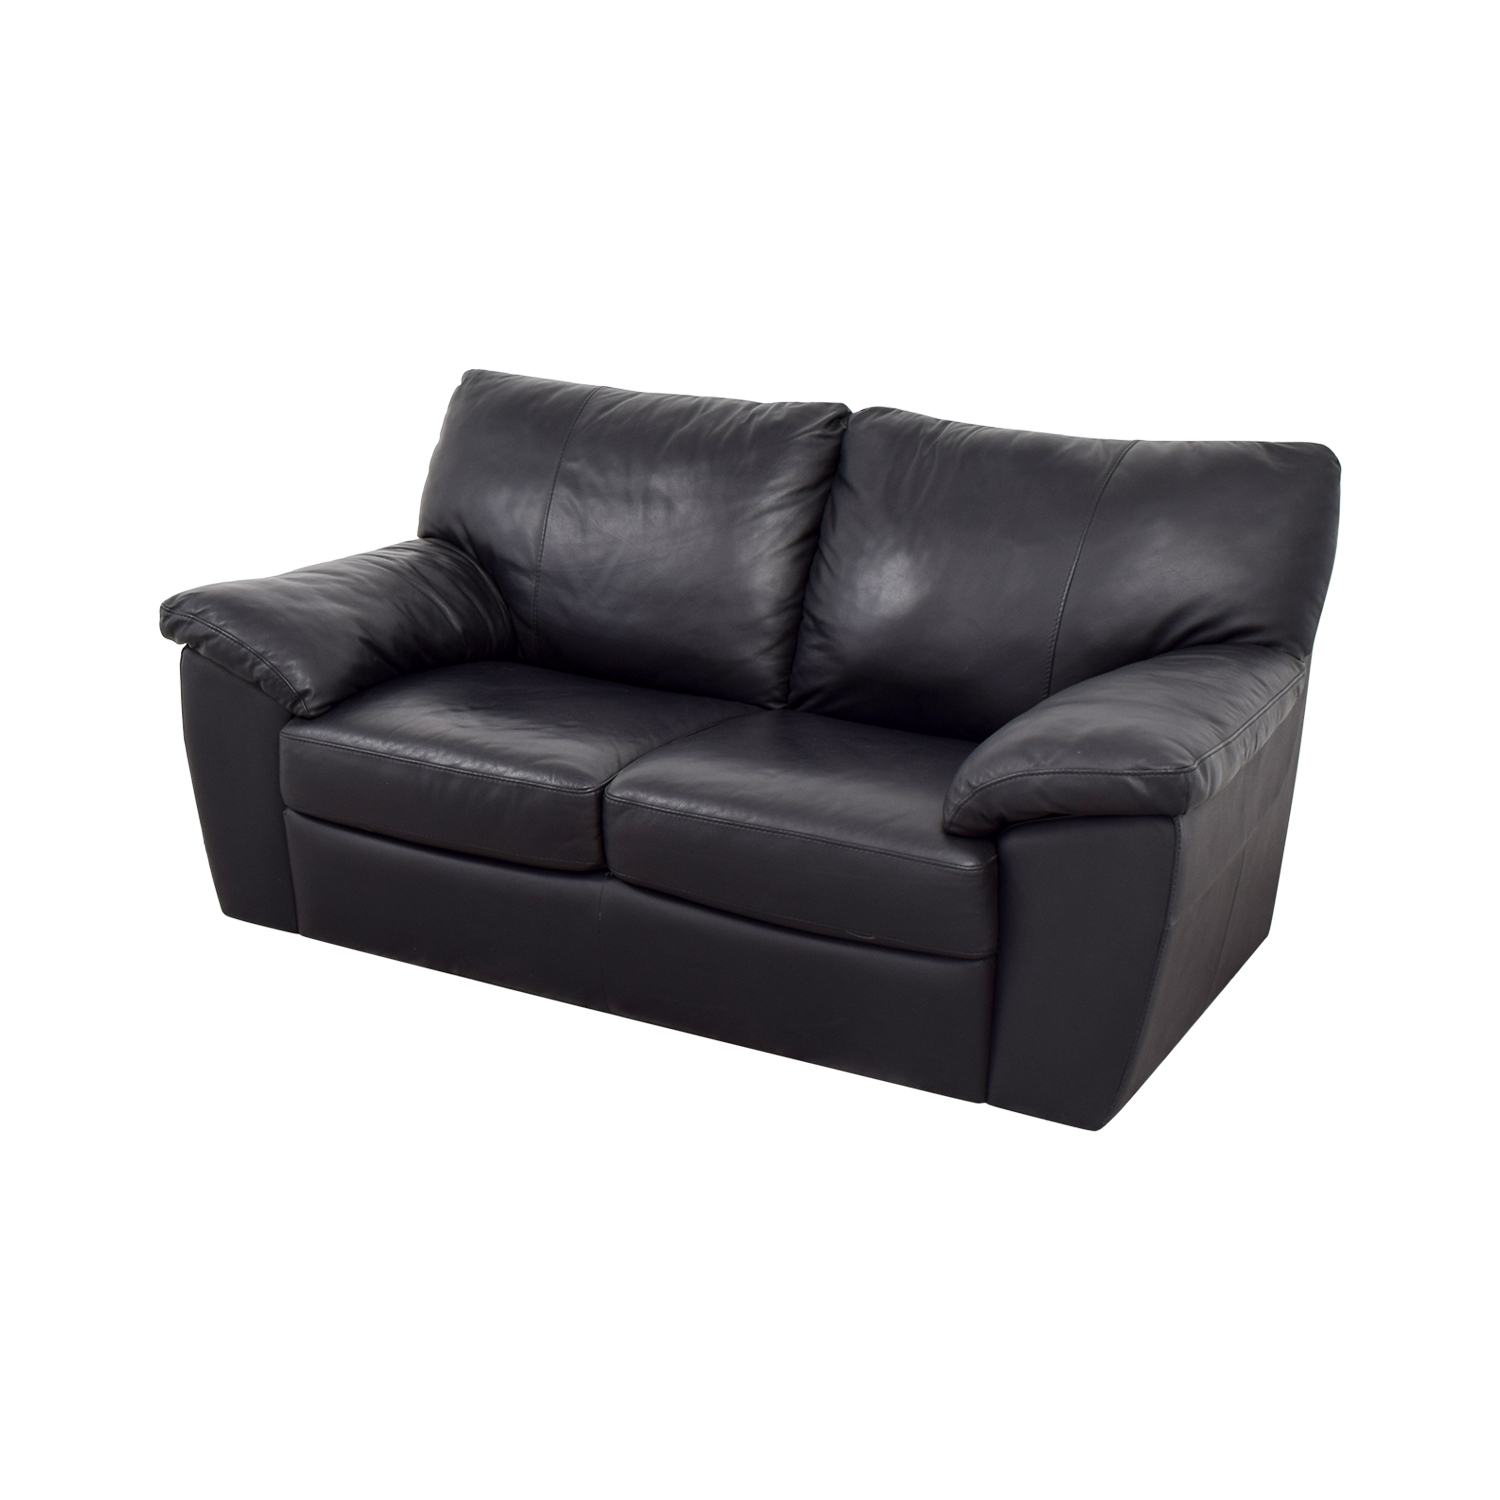 Ikea Sofa Leather Landskrona Sofa Grann Bomstad Black Wood Ikea Thesofa